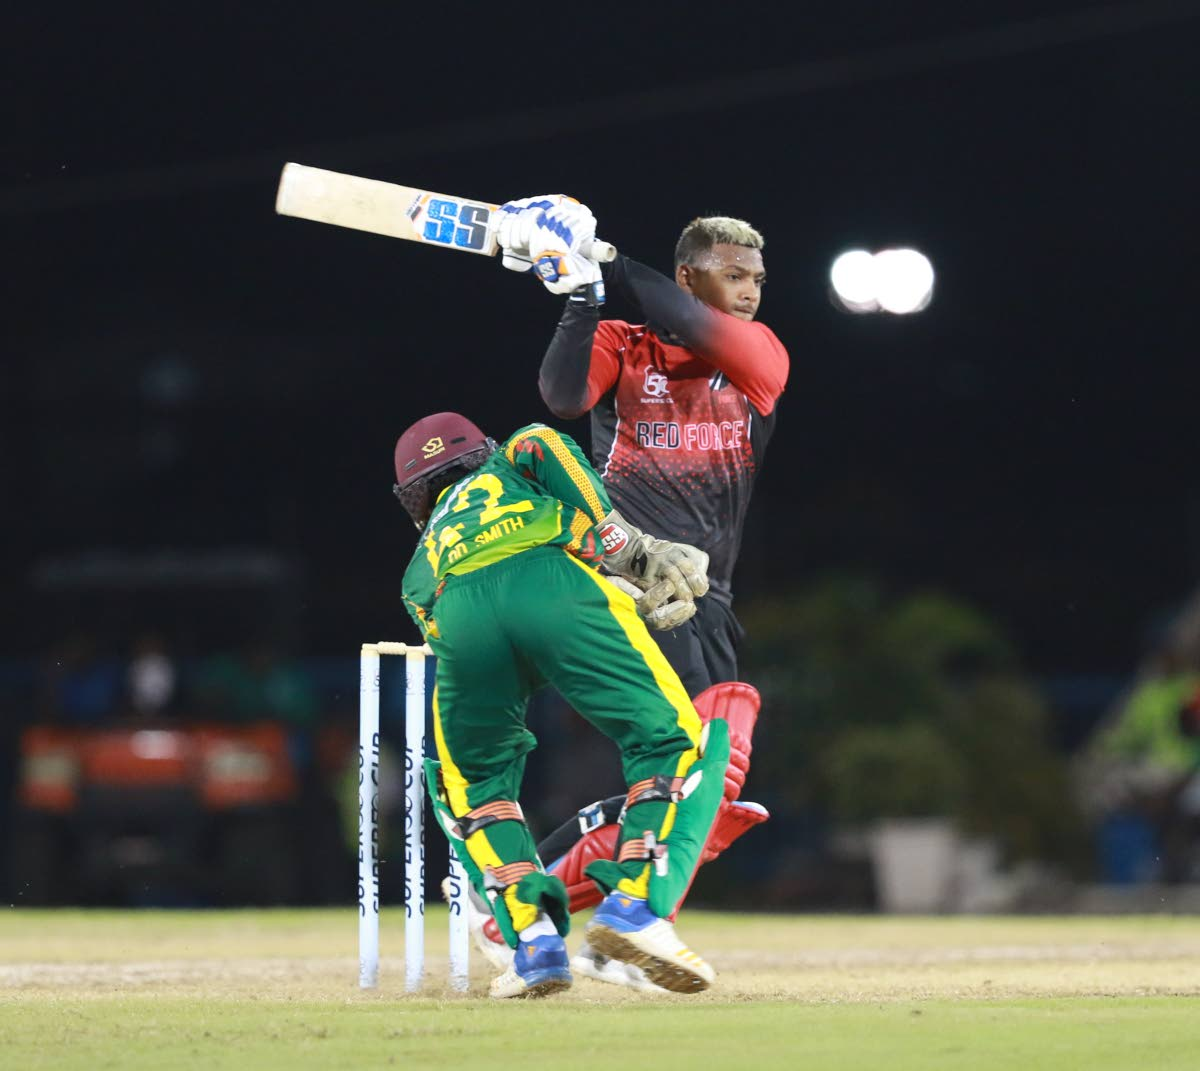 TT Red Force batsman Nicholas Pooran plays a shot during his knock  of 89 runs during the Super 50 match against the Windward Islands at the Queen's Park Oval,on October 3. Image:Nicholas Bhajan/CA-images